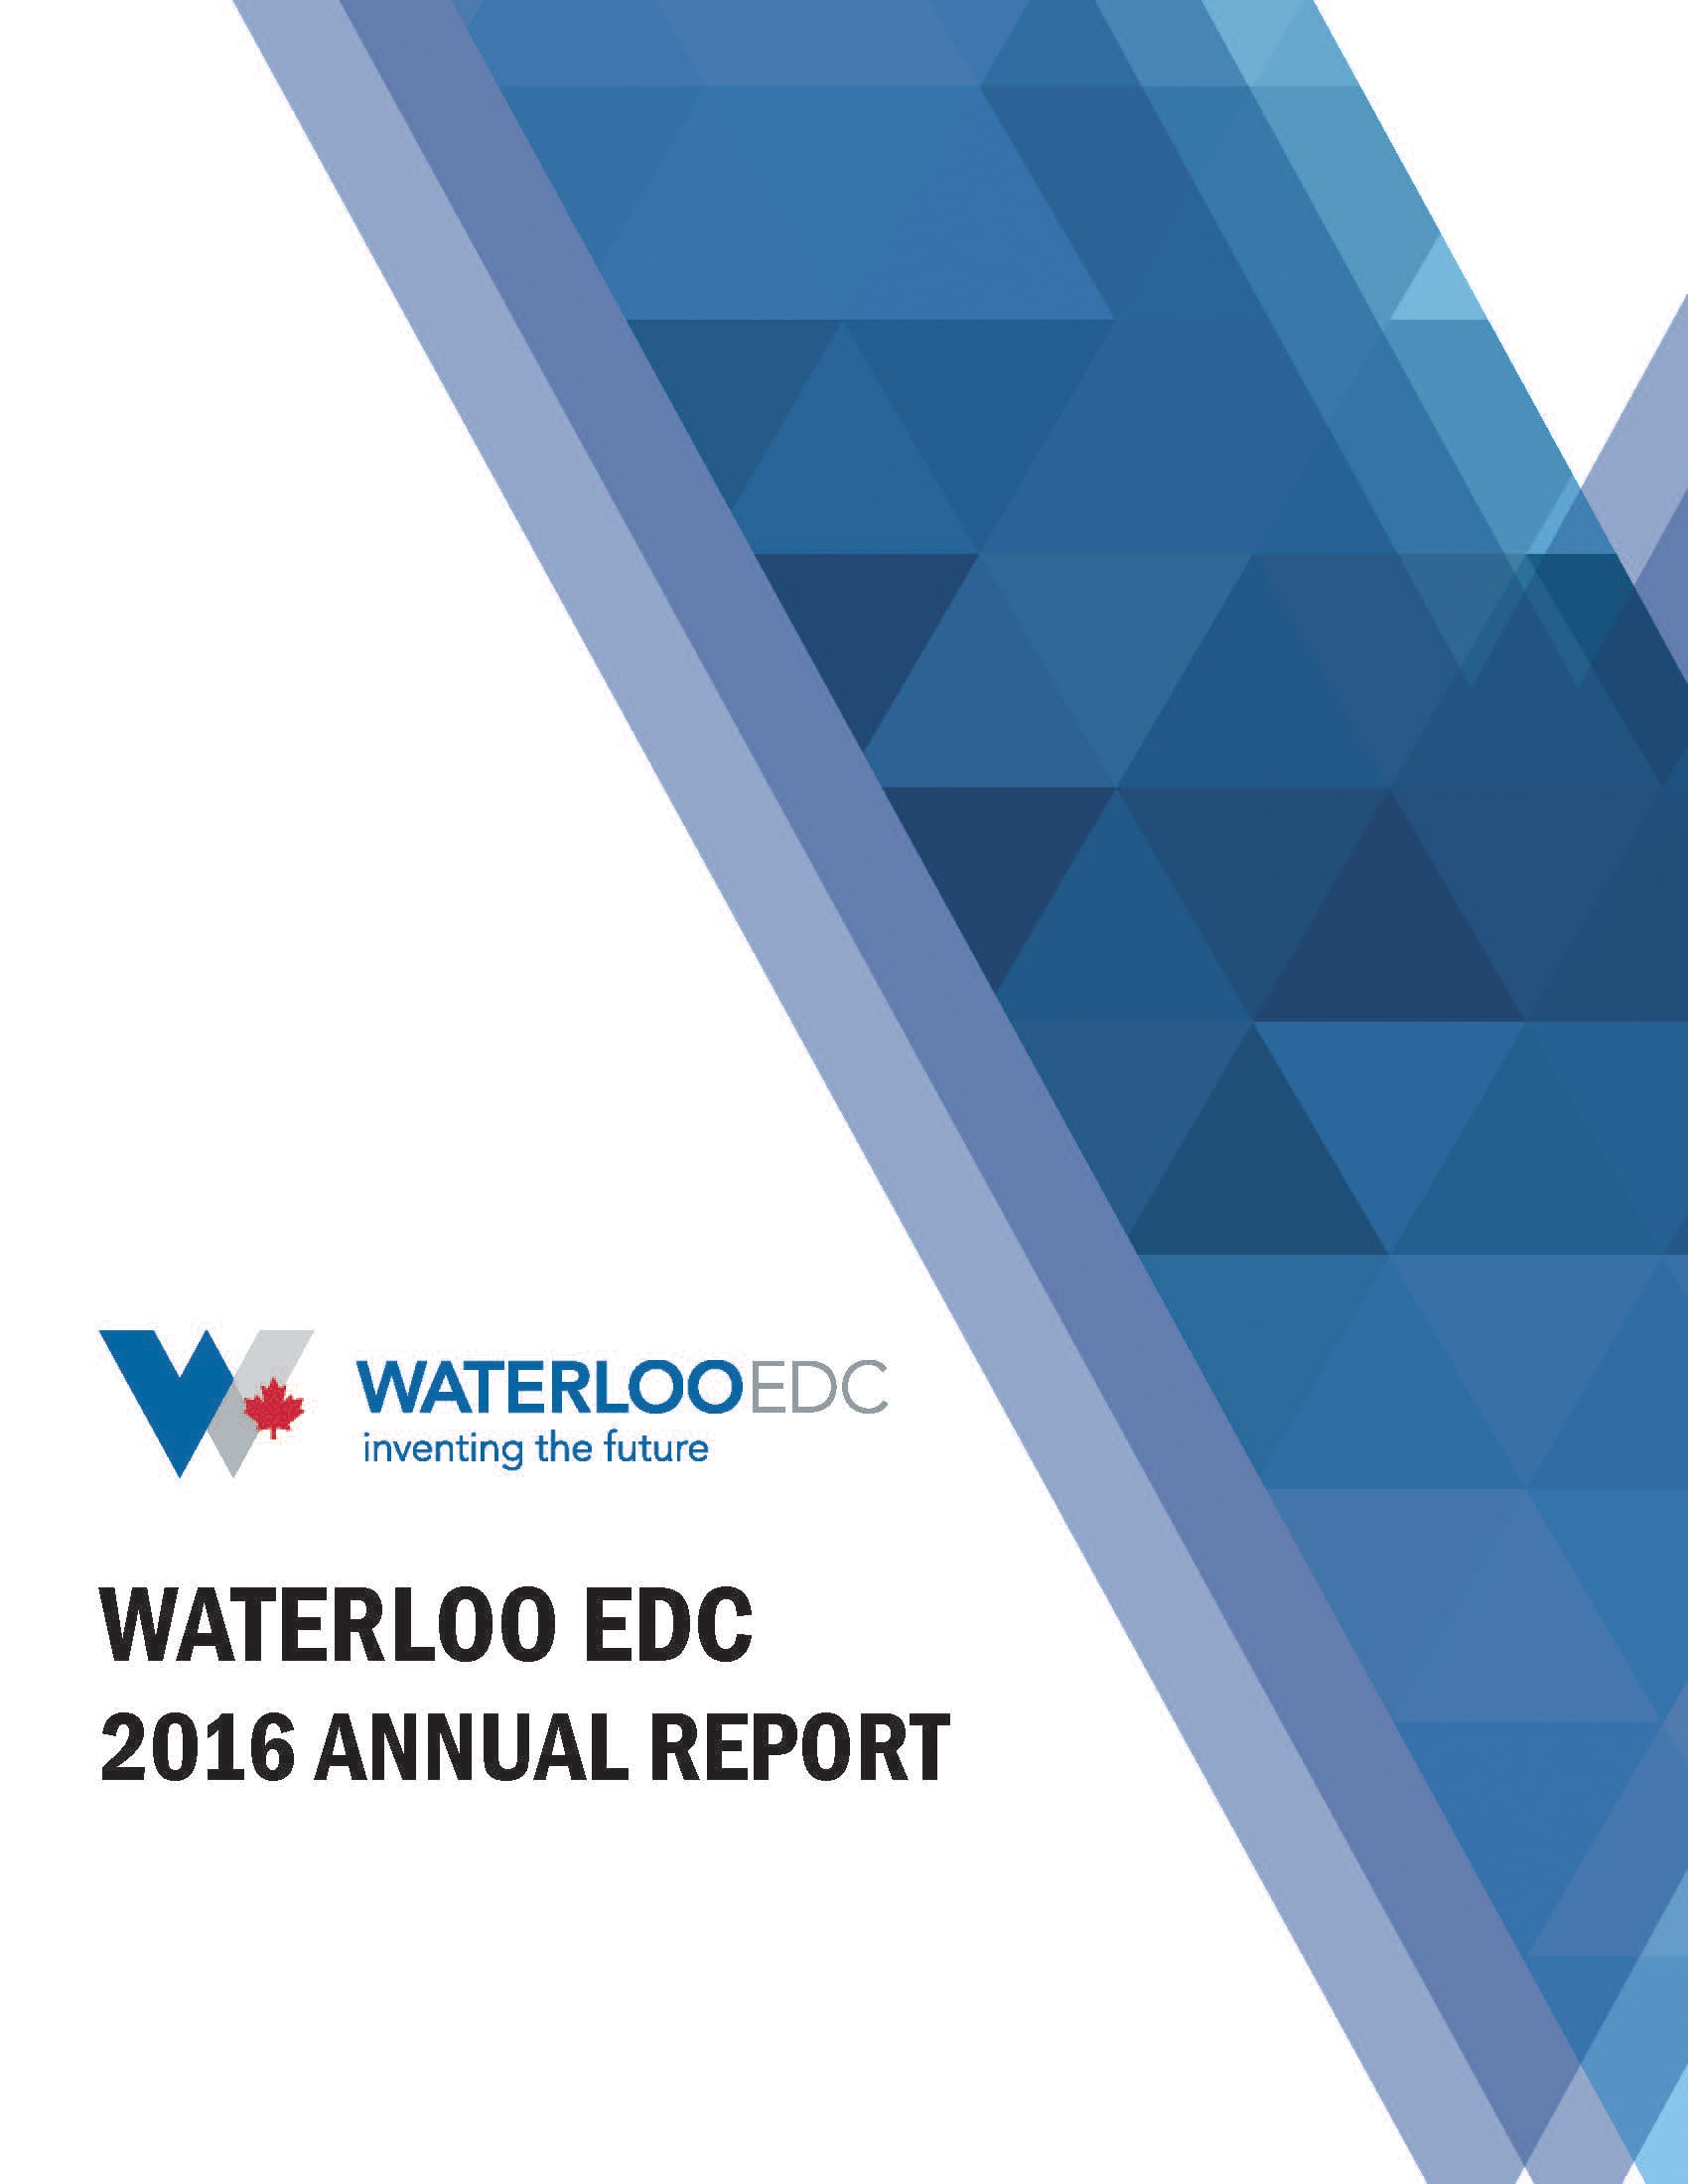 Waterloo EDC 2016 Annual Report